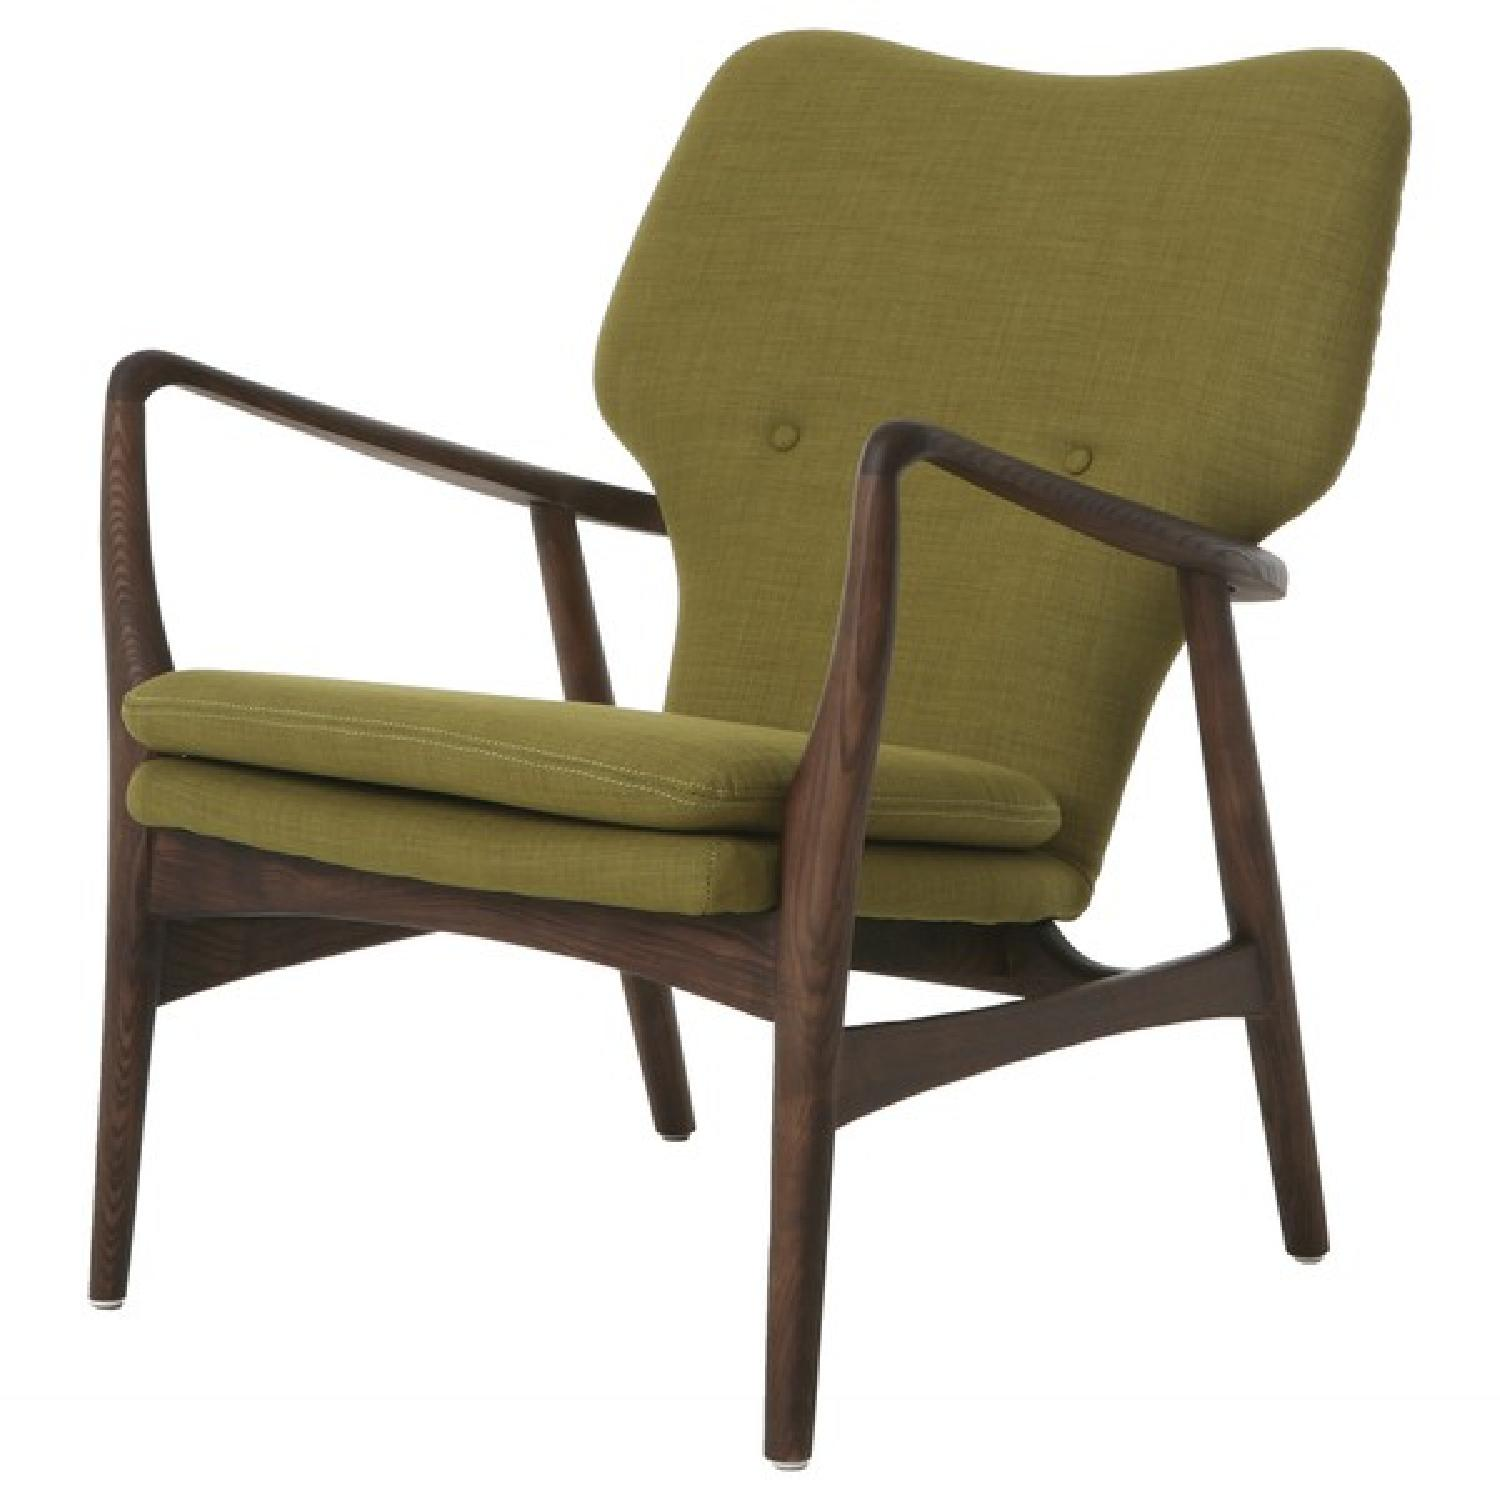 Solid wood mid century danish modern lounge chair aptdeco for Mid century danish modern chair